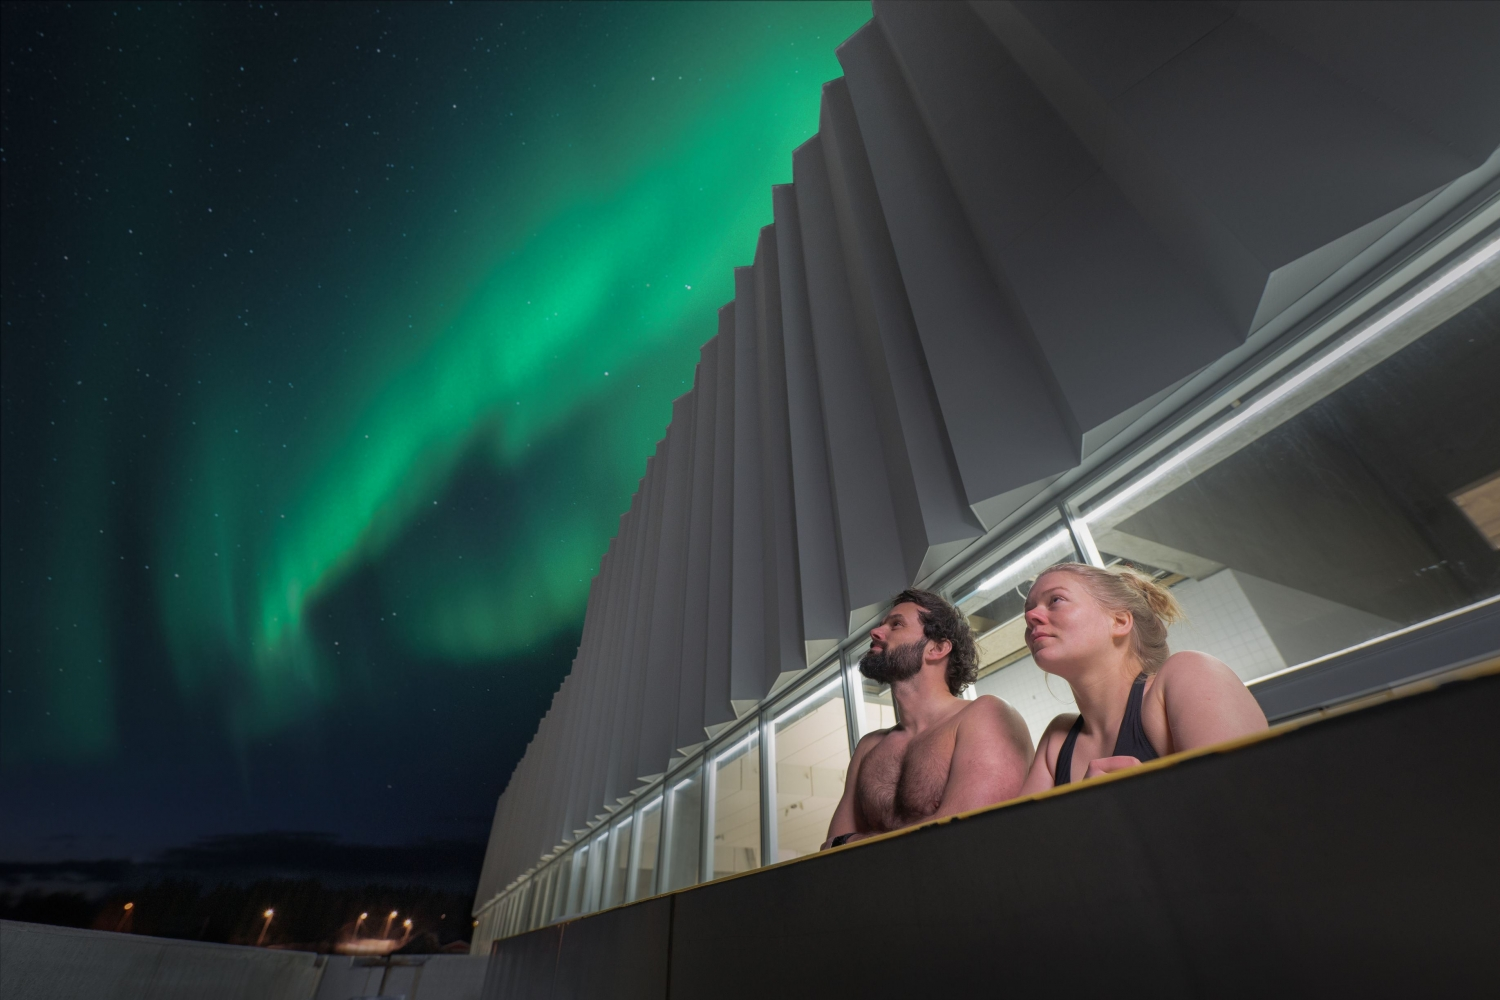 Man and woman in a pool under the Northern Light sky